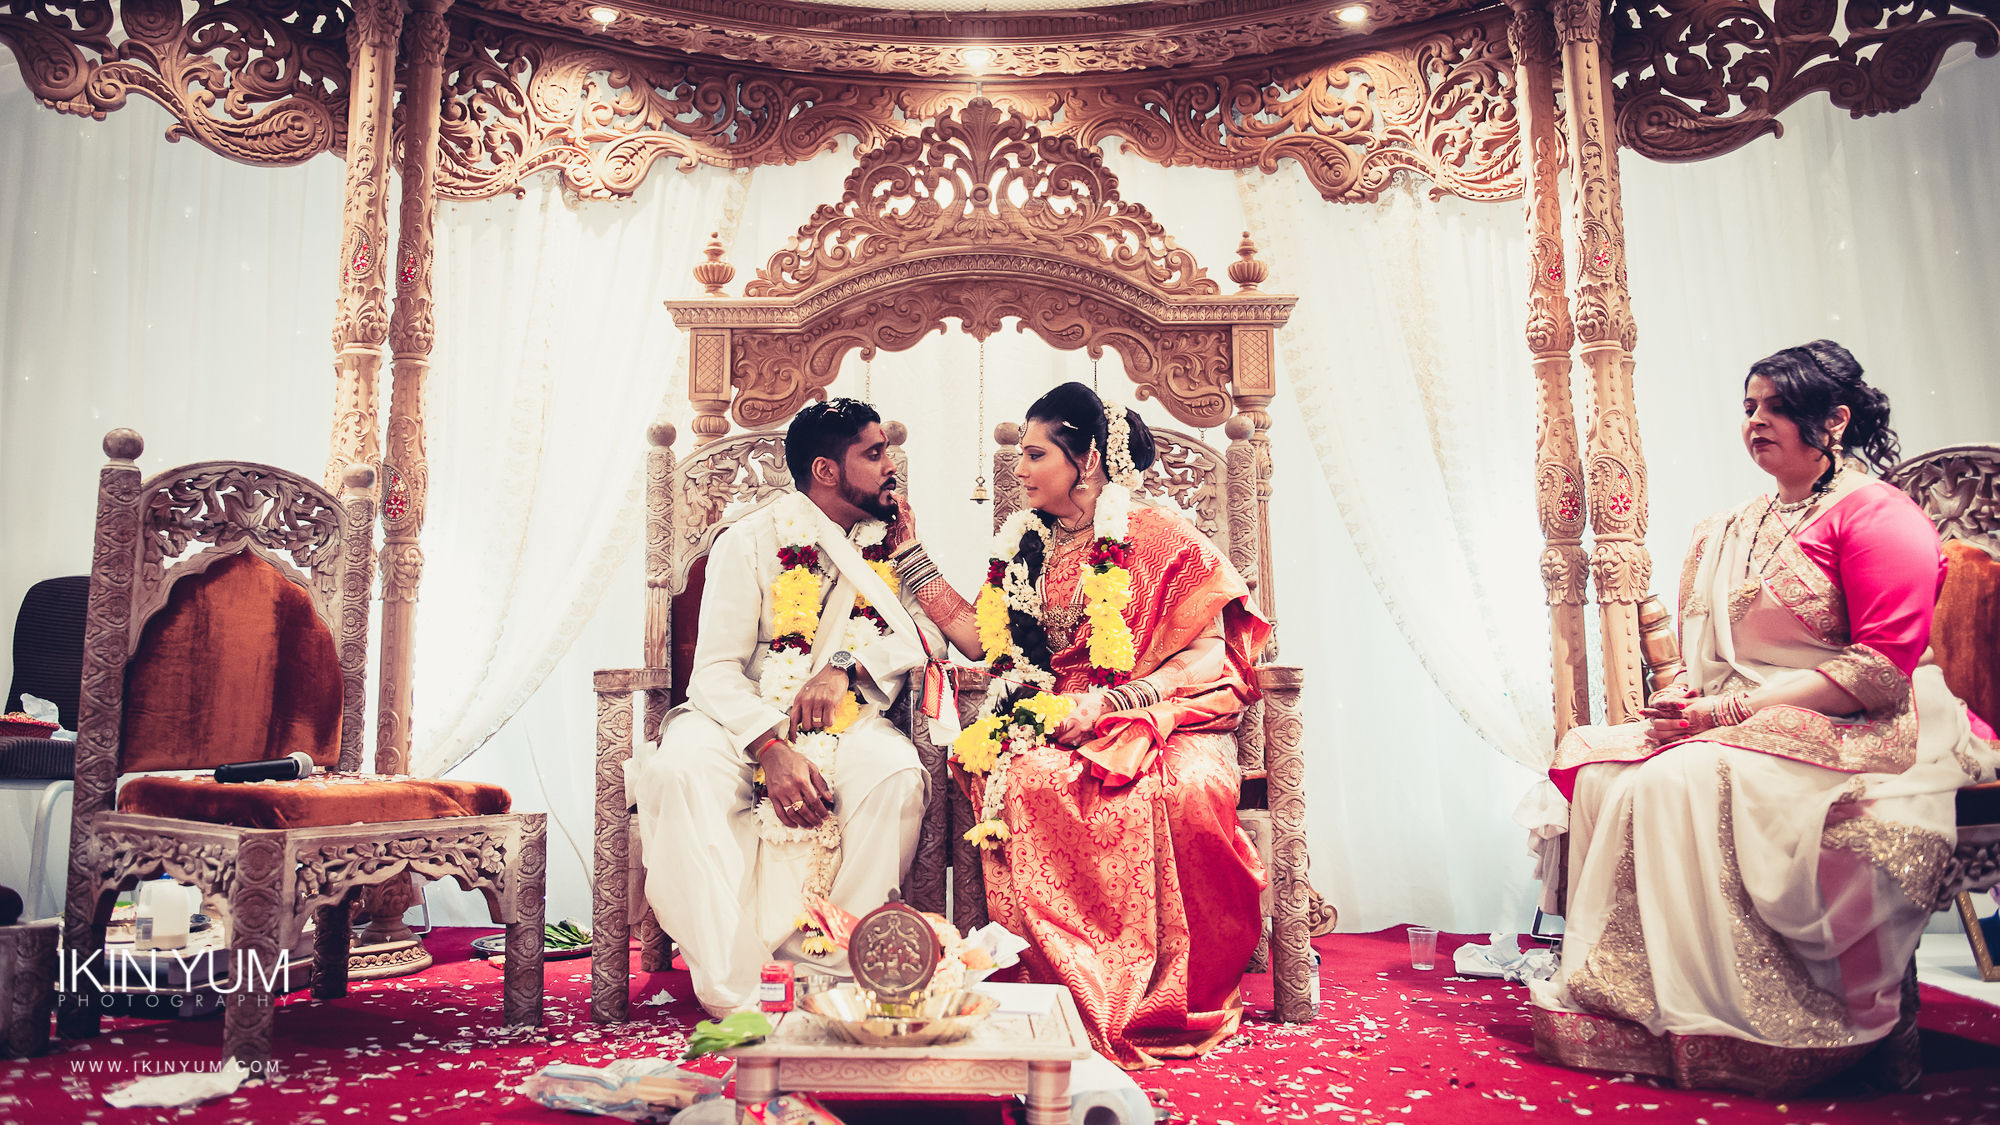 Grand Connaught Rooms Wedding - Minal & Raj - Ikin Yum Photography-070.jpg